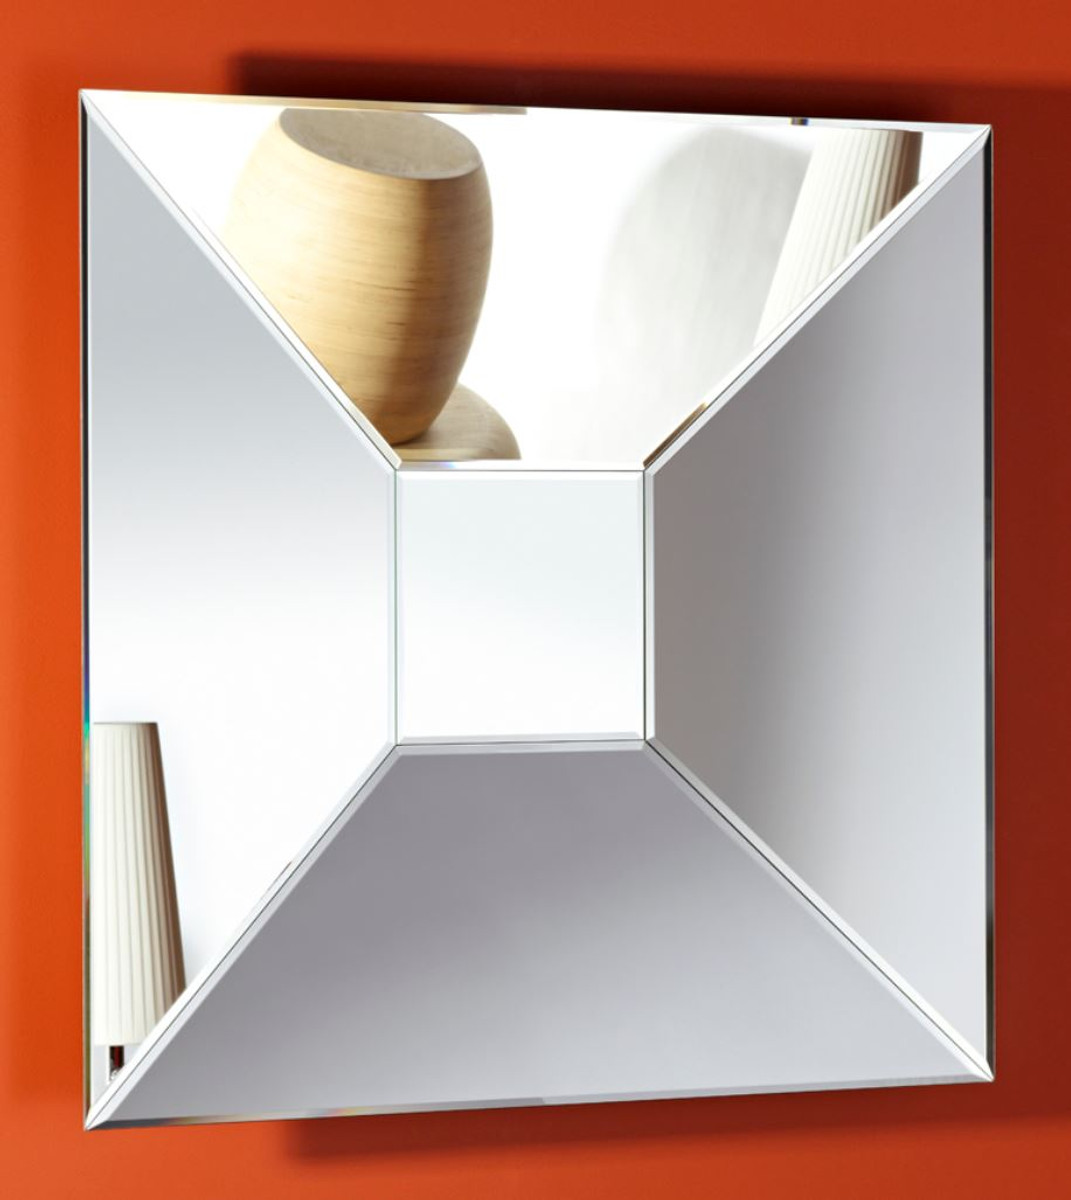 Casa padrino designer mirror 90 x 10 x h 90 cm luxury for Miroir 90x90